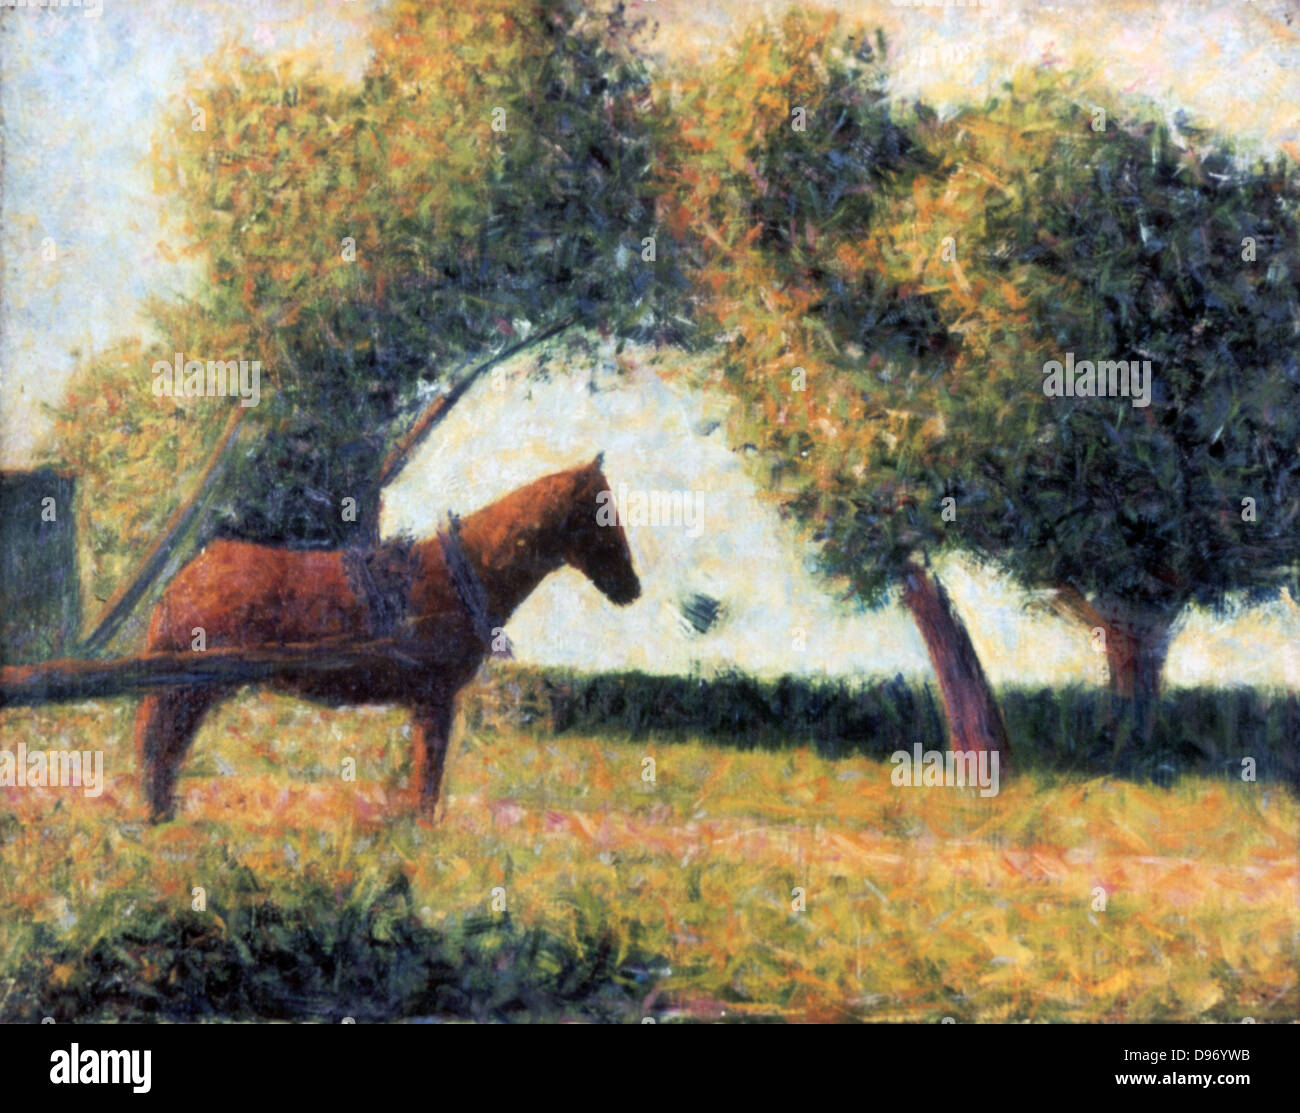 Horse in a Field' 1883: Georges Pierre Seurat (1859-1891) French artist. - Stock Image